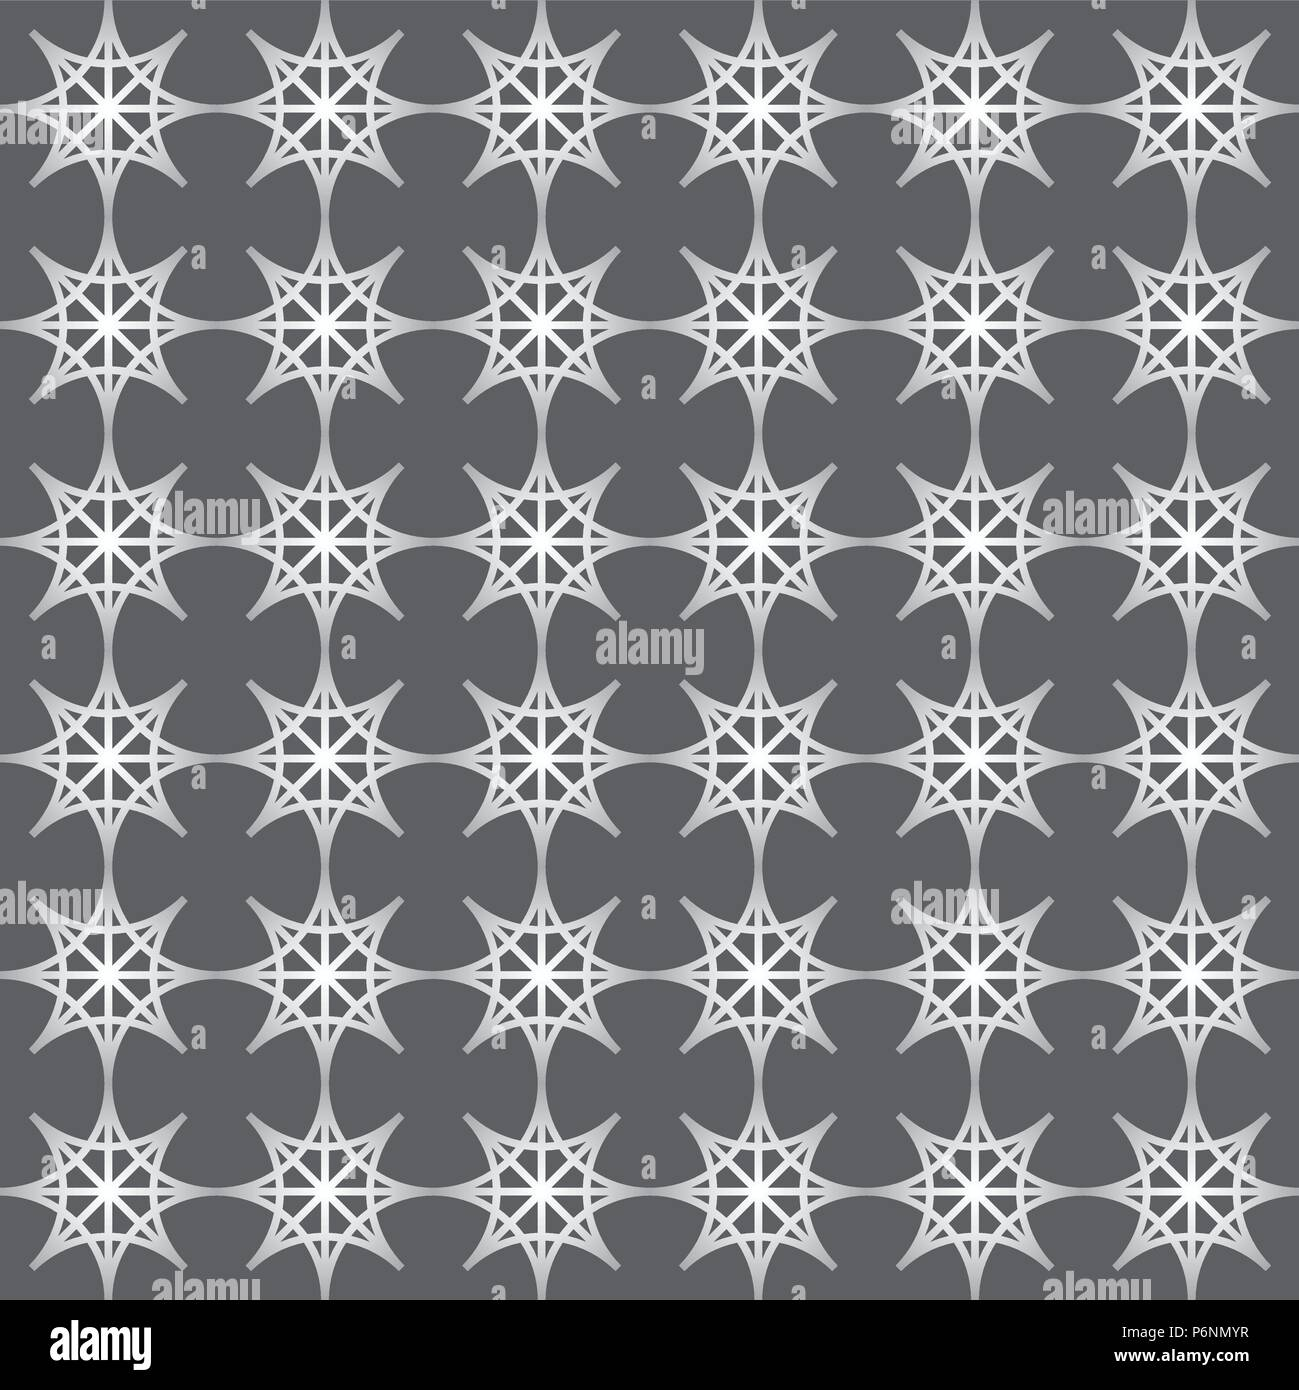 Silver four angle star seamless pattern on pastel background. Abstract star pattern in modern and vintage style for design. - Stock Vector